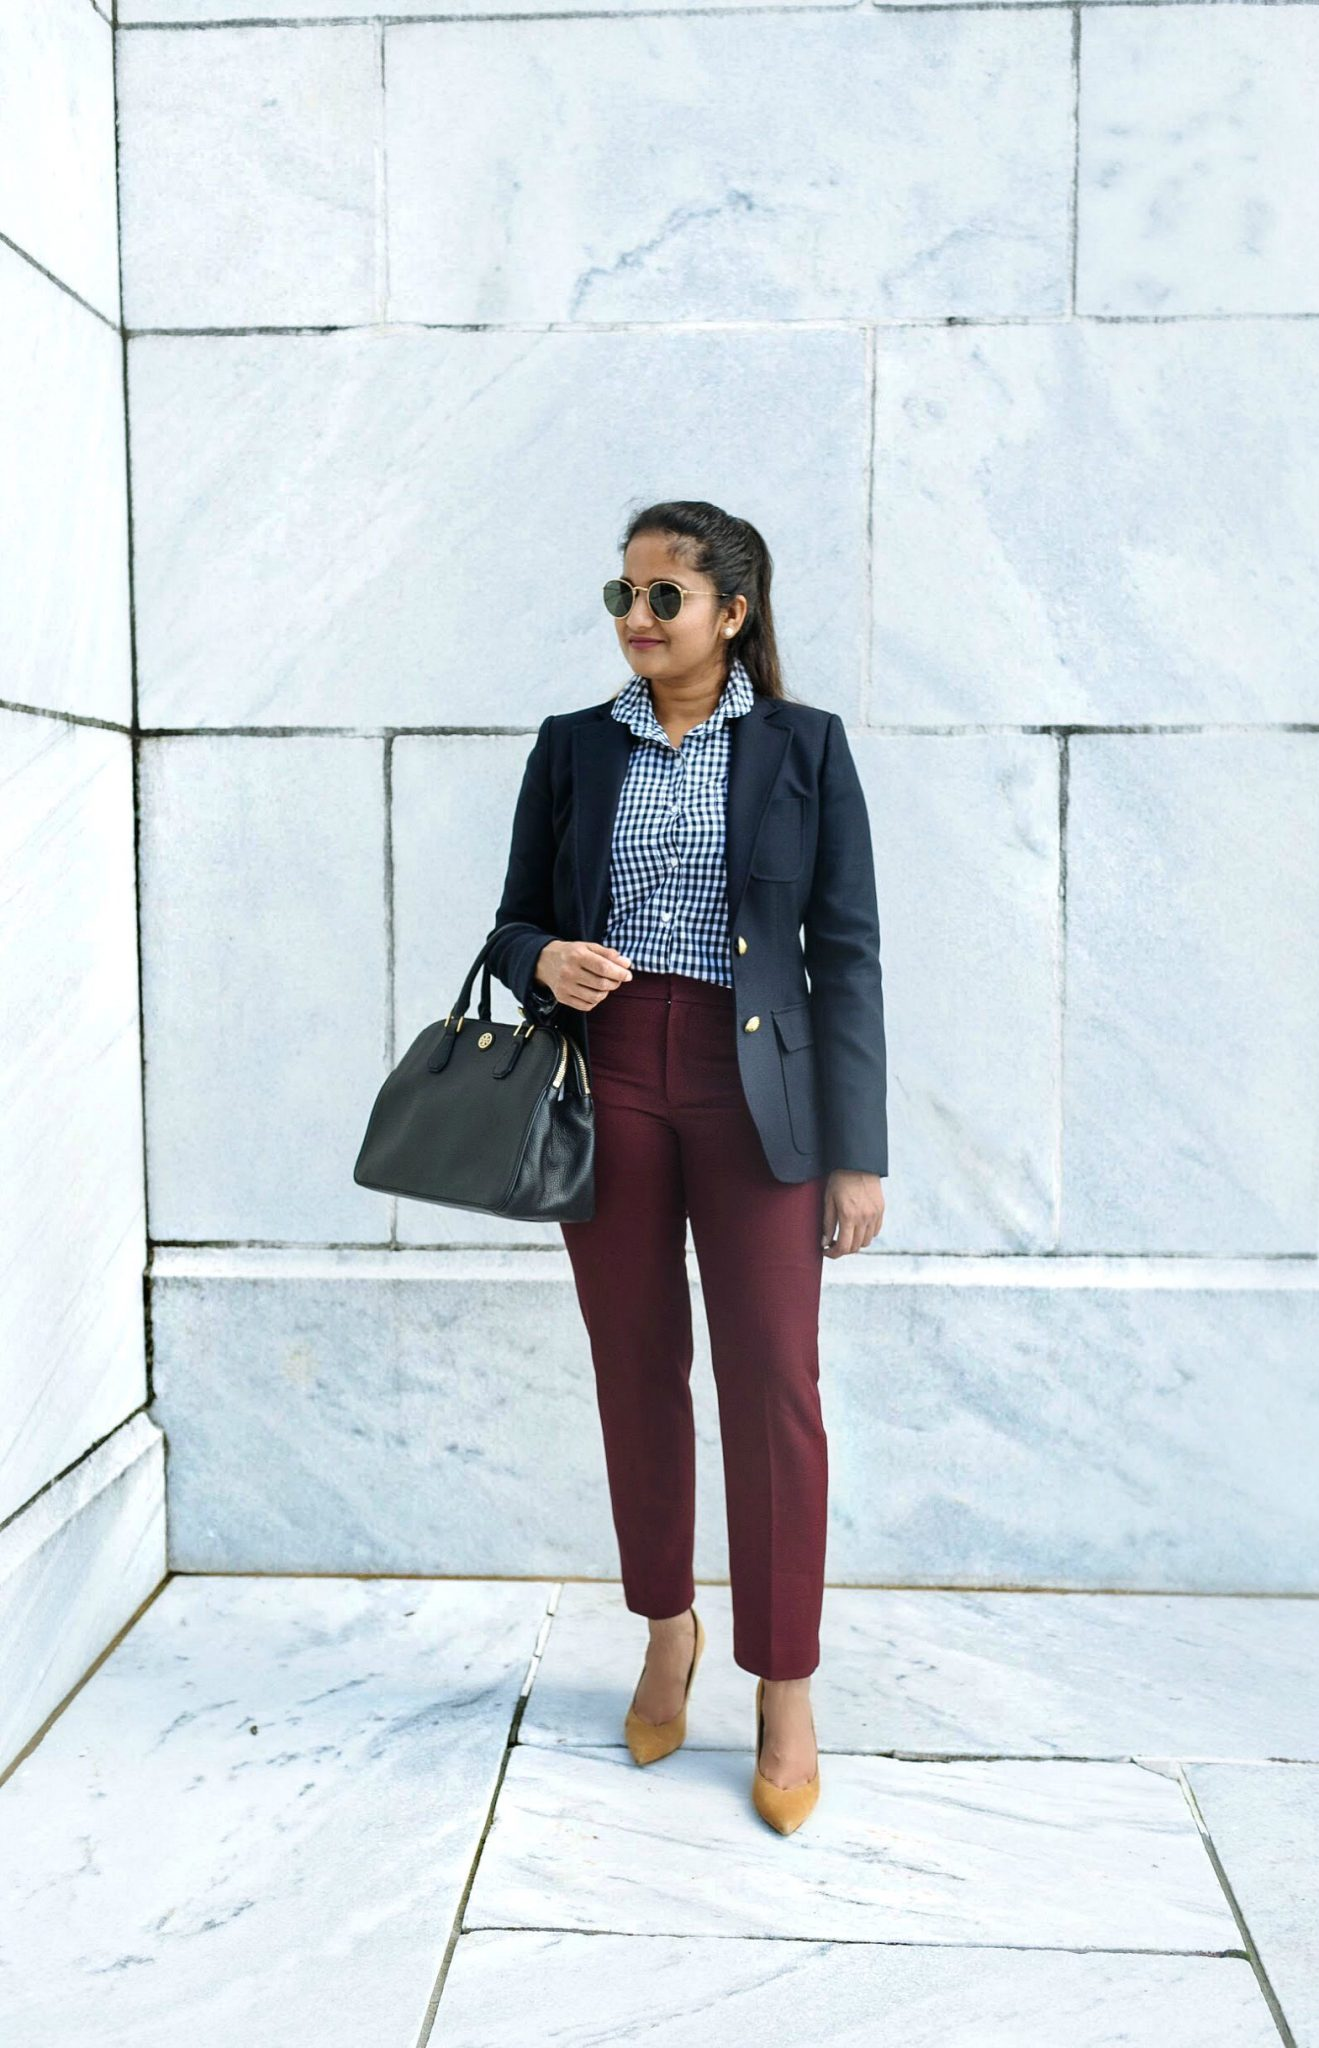 wearing J.crew Schoolboy blazer in navy | Fall Business casual outfit ideas | Colorful Fall Work Outfits featured by popular US modest fashion blogger, Dreaming Loud